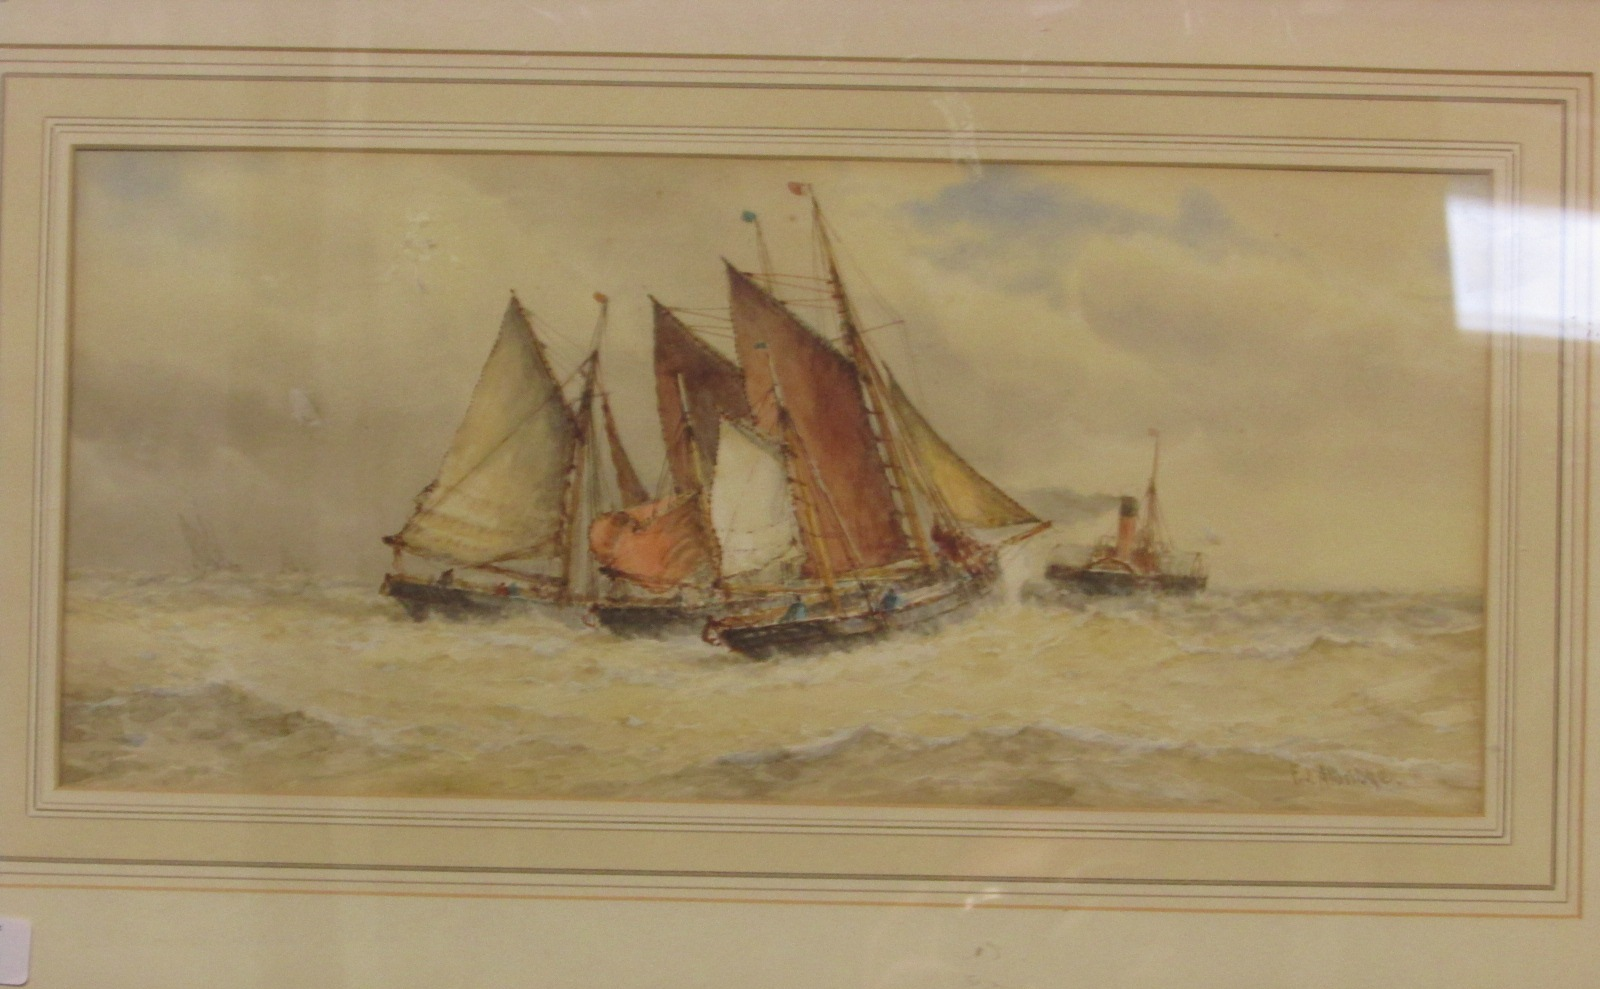 Lot 44 - Trawlers and paddle steamer, watercolour, signed F J Aldridge lower right, (20.5cm x 45.5cm),